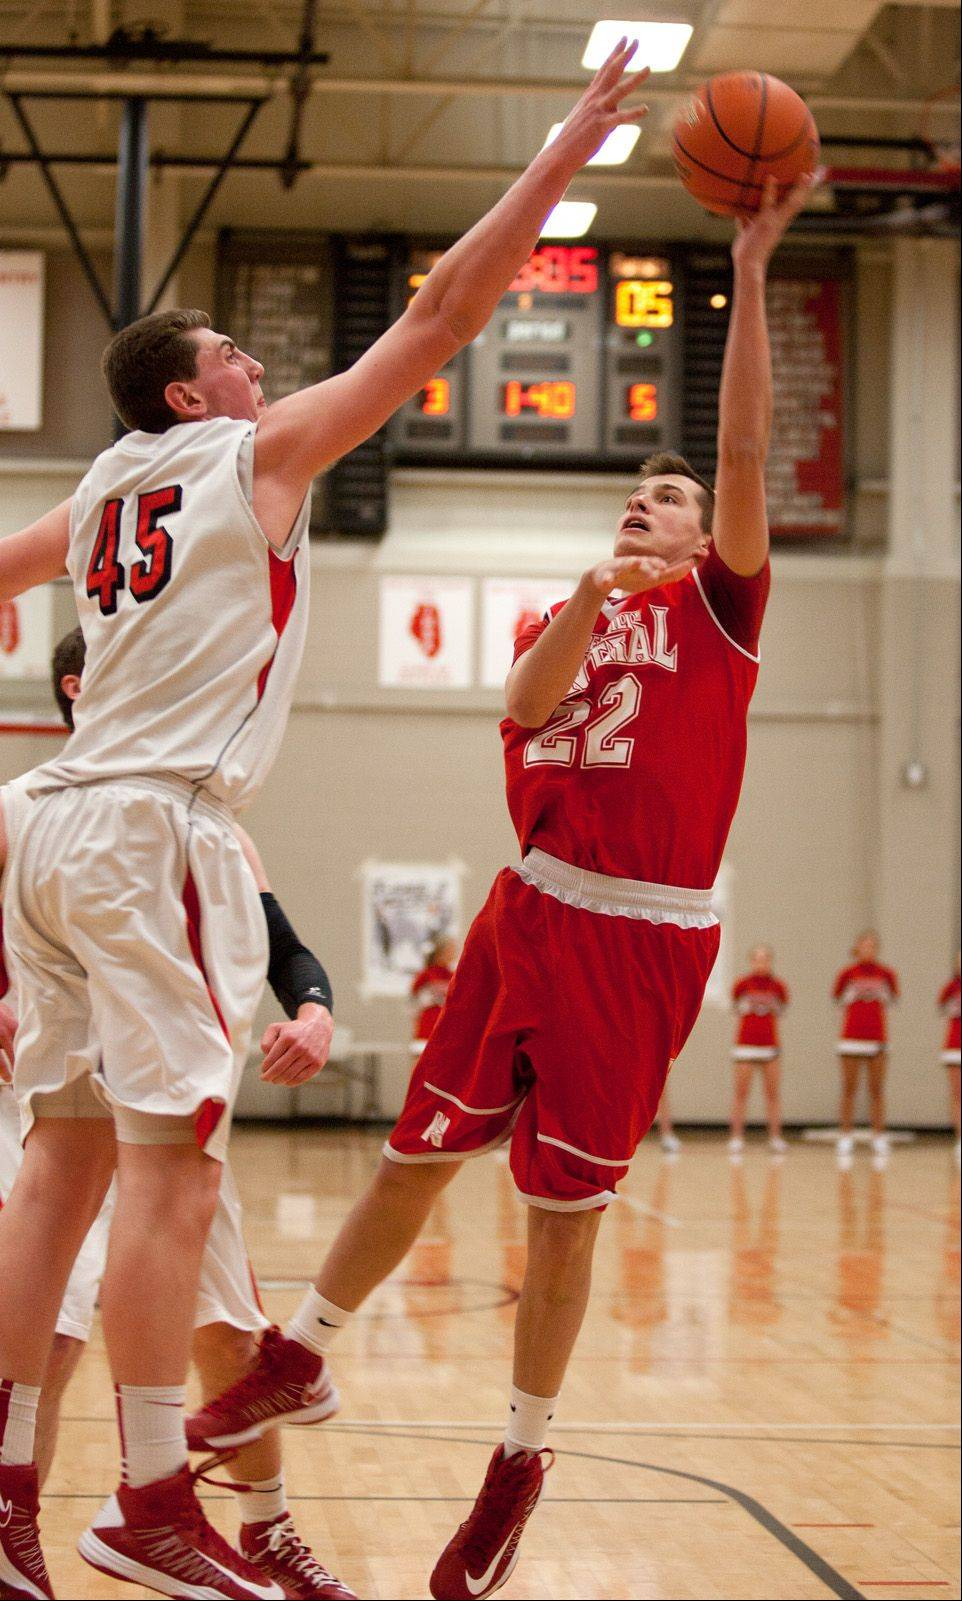 Naperville Central's Taylor Zelinski, right, shoots over Benet's Sean O'Mara.